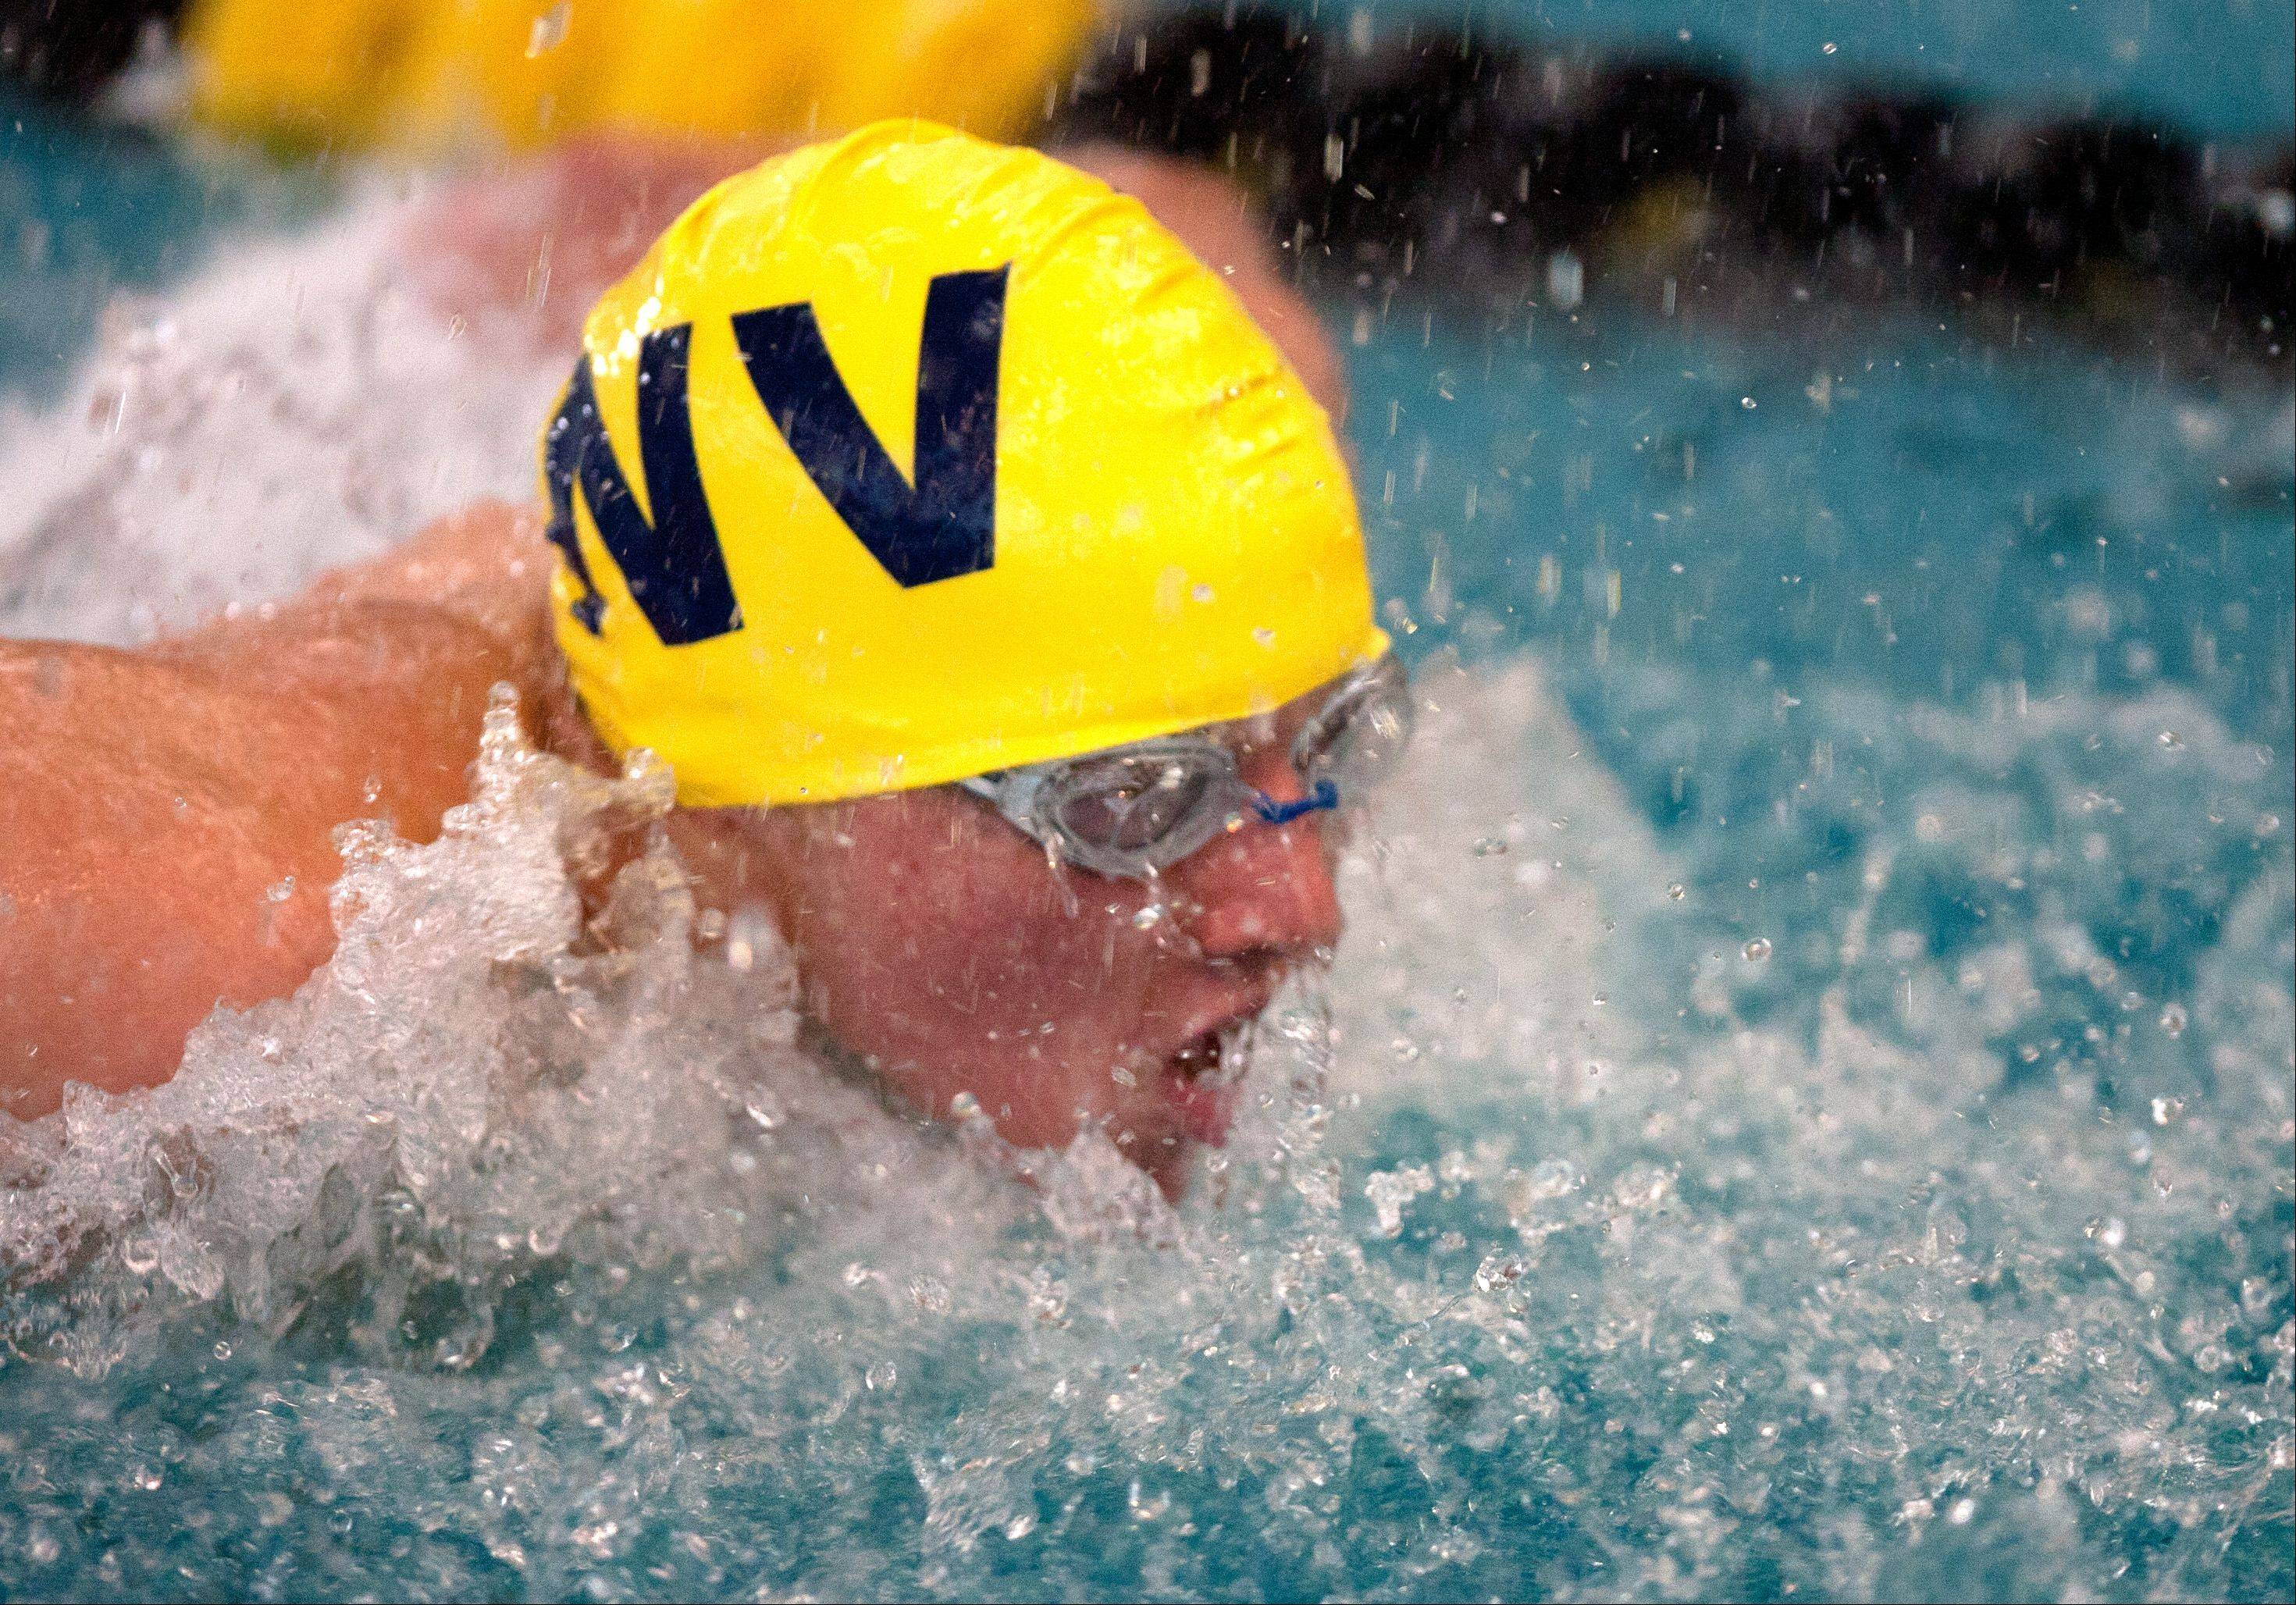 Brett Whaley of Neuqua Valley High School swims the 100 yard butterfly at the Mustang Swim and Dive Invite, hosted by Metea Valley High School.